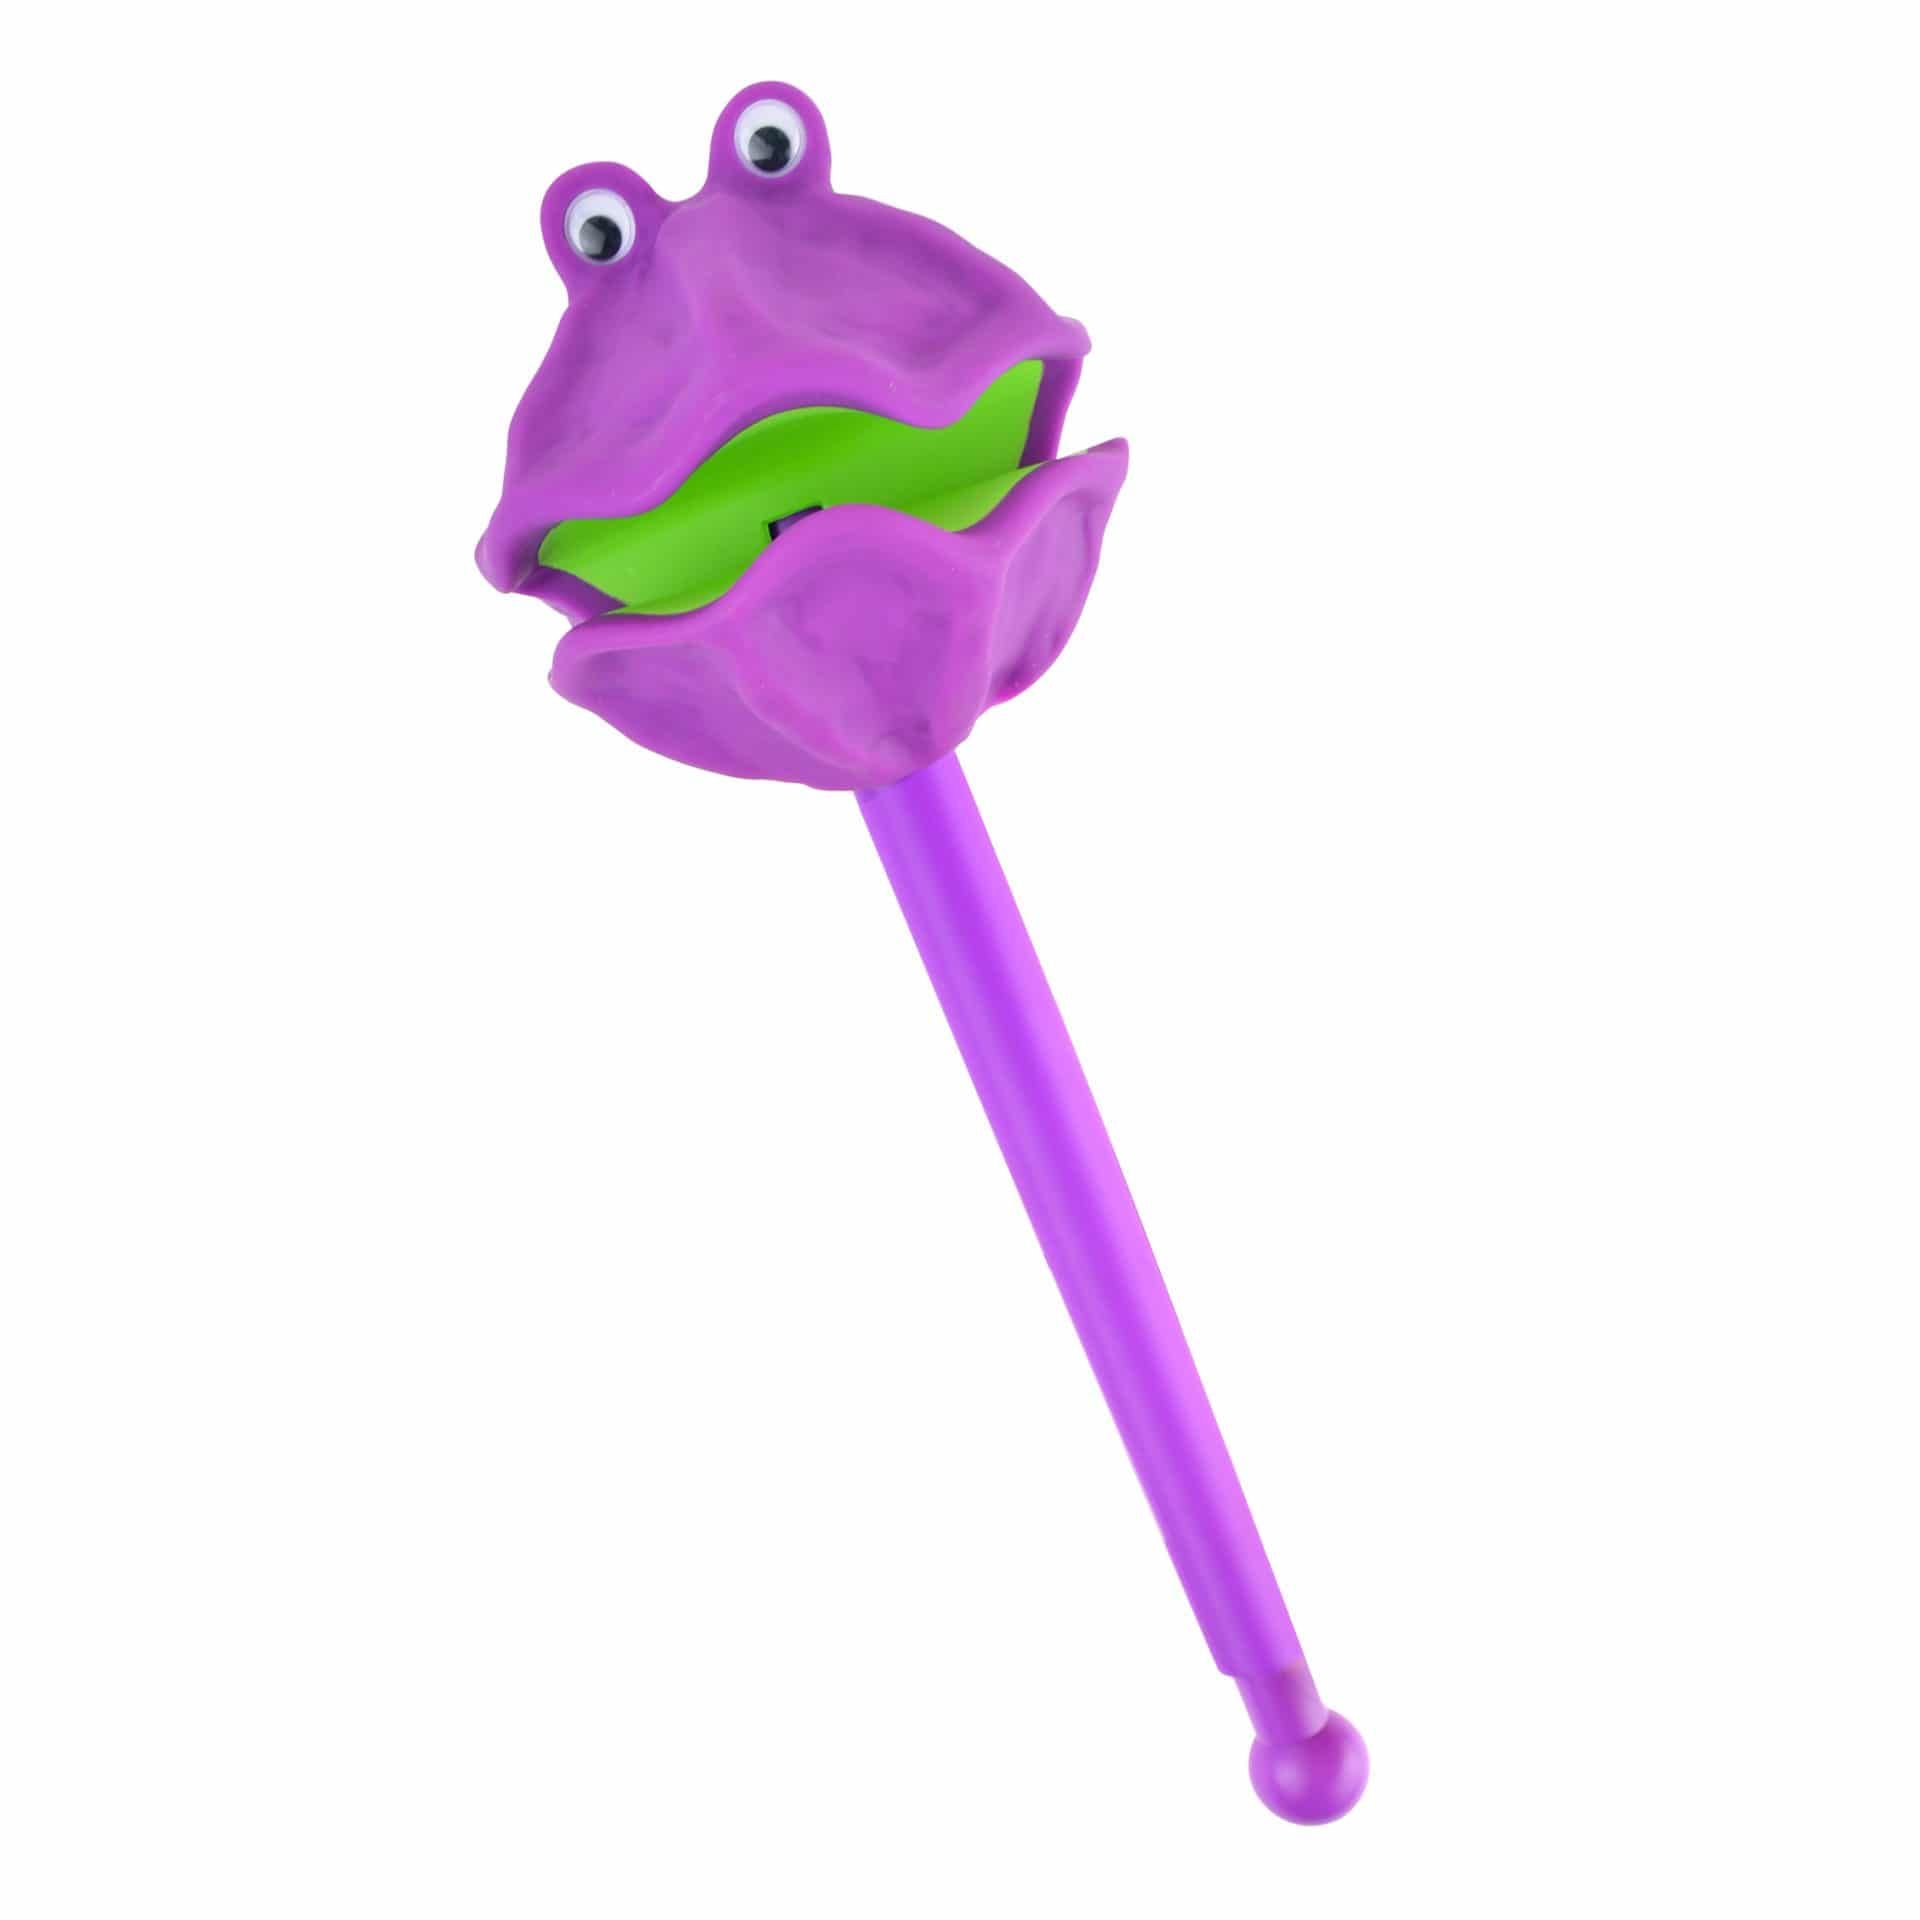 Clam puppet-on-a-stick